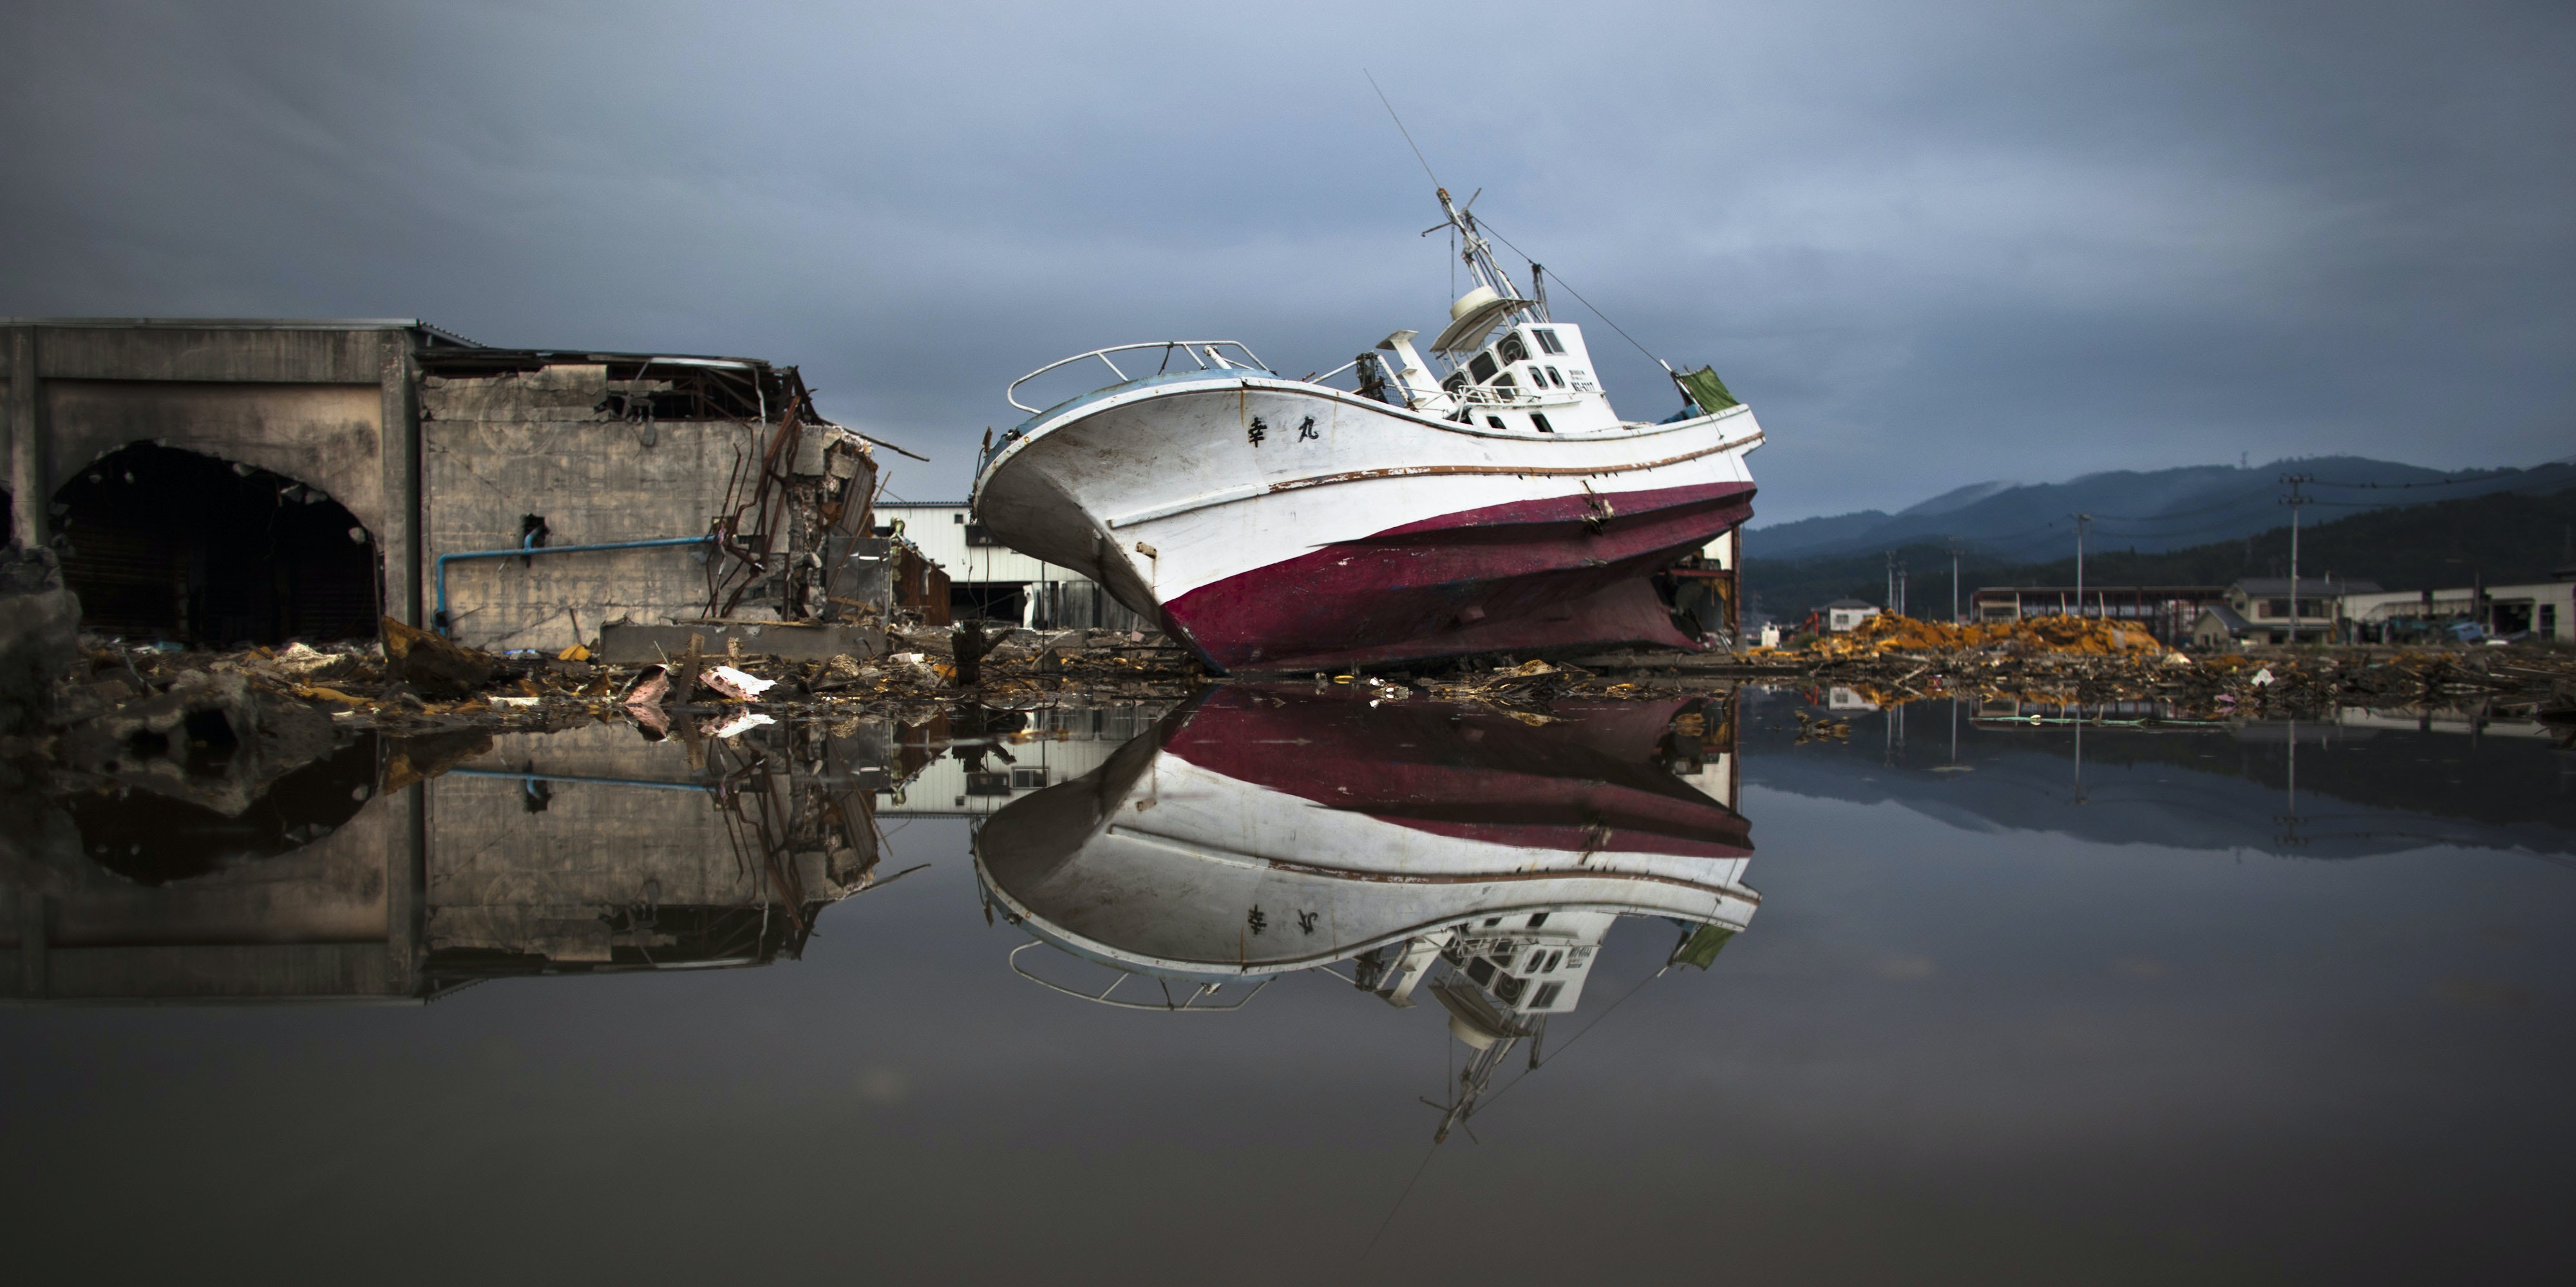 A devasted area is seen prior to the sixth month anniversary of the March 11 earthquake and massive tsunami on September 10, 2011 in Kesennuma, Miyagi Prefecture, Japan. A 9.0 magnitude strong earthquake struck Japan offshore on March 11 at 2:46pm local time, triggering a tsunami wave of up to ten metres which engulfed large parts of north-eastern Japan and also damaging the Fukushima nuclear plant, causing the worst nuclear crisis in decades. The current number of dead and missing is reportedly estimated to be 22,900.